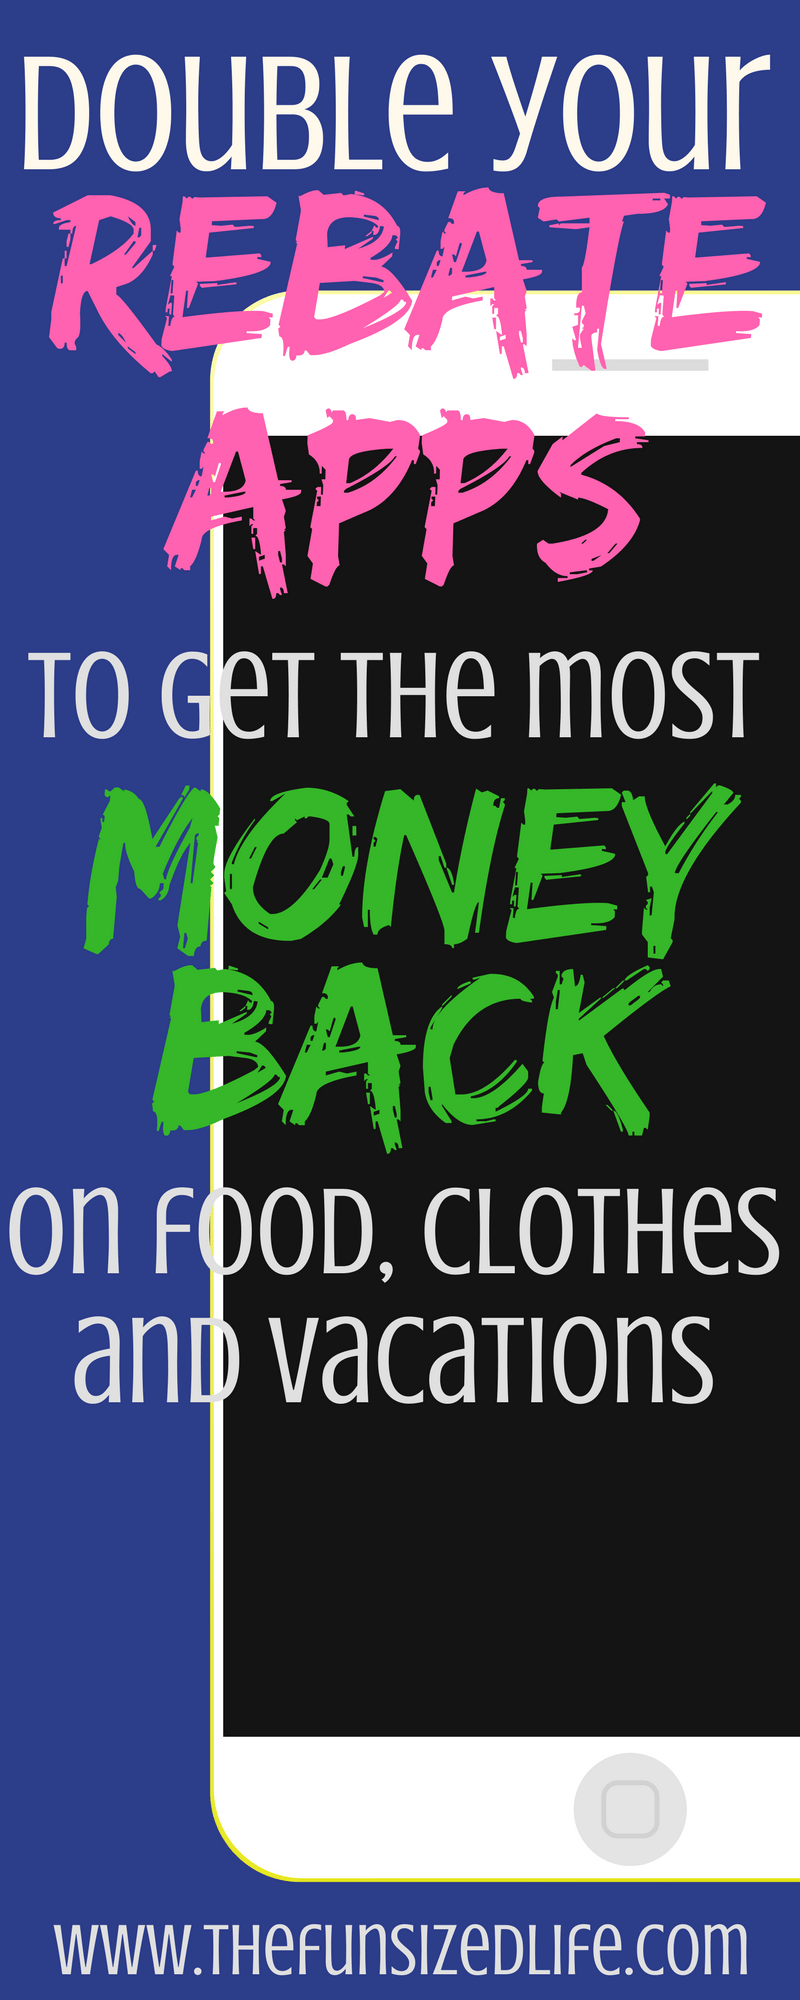 You can save SO much by doubling these apps it's crazy! #rebateapps #vacation #discounts #savings